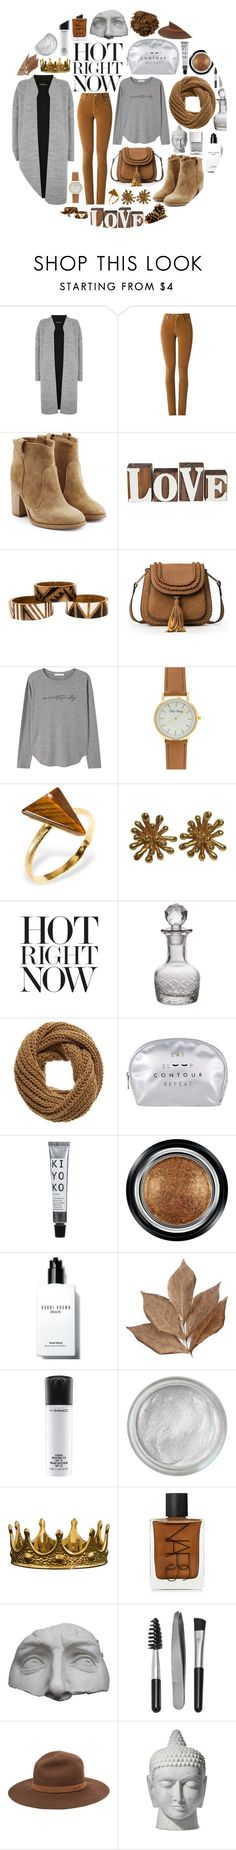 """brown//grey"" by perfectlydeathly ❤ liked on Polyvore featuring Warehouse, Amapô, Laurence Dacade, Voz Collective, MANGO, Ona Chan, Christian Lacroix, Etro, Cultural Intrigue and even&odd"